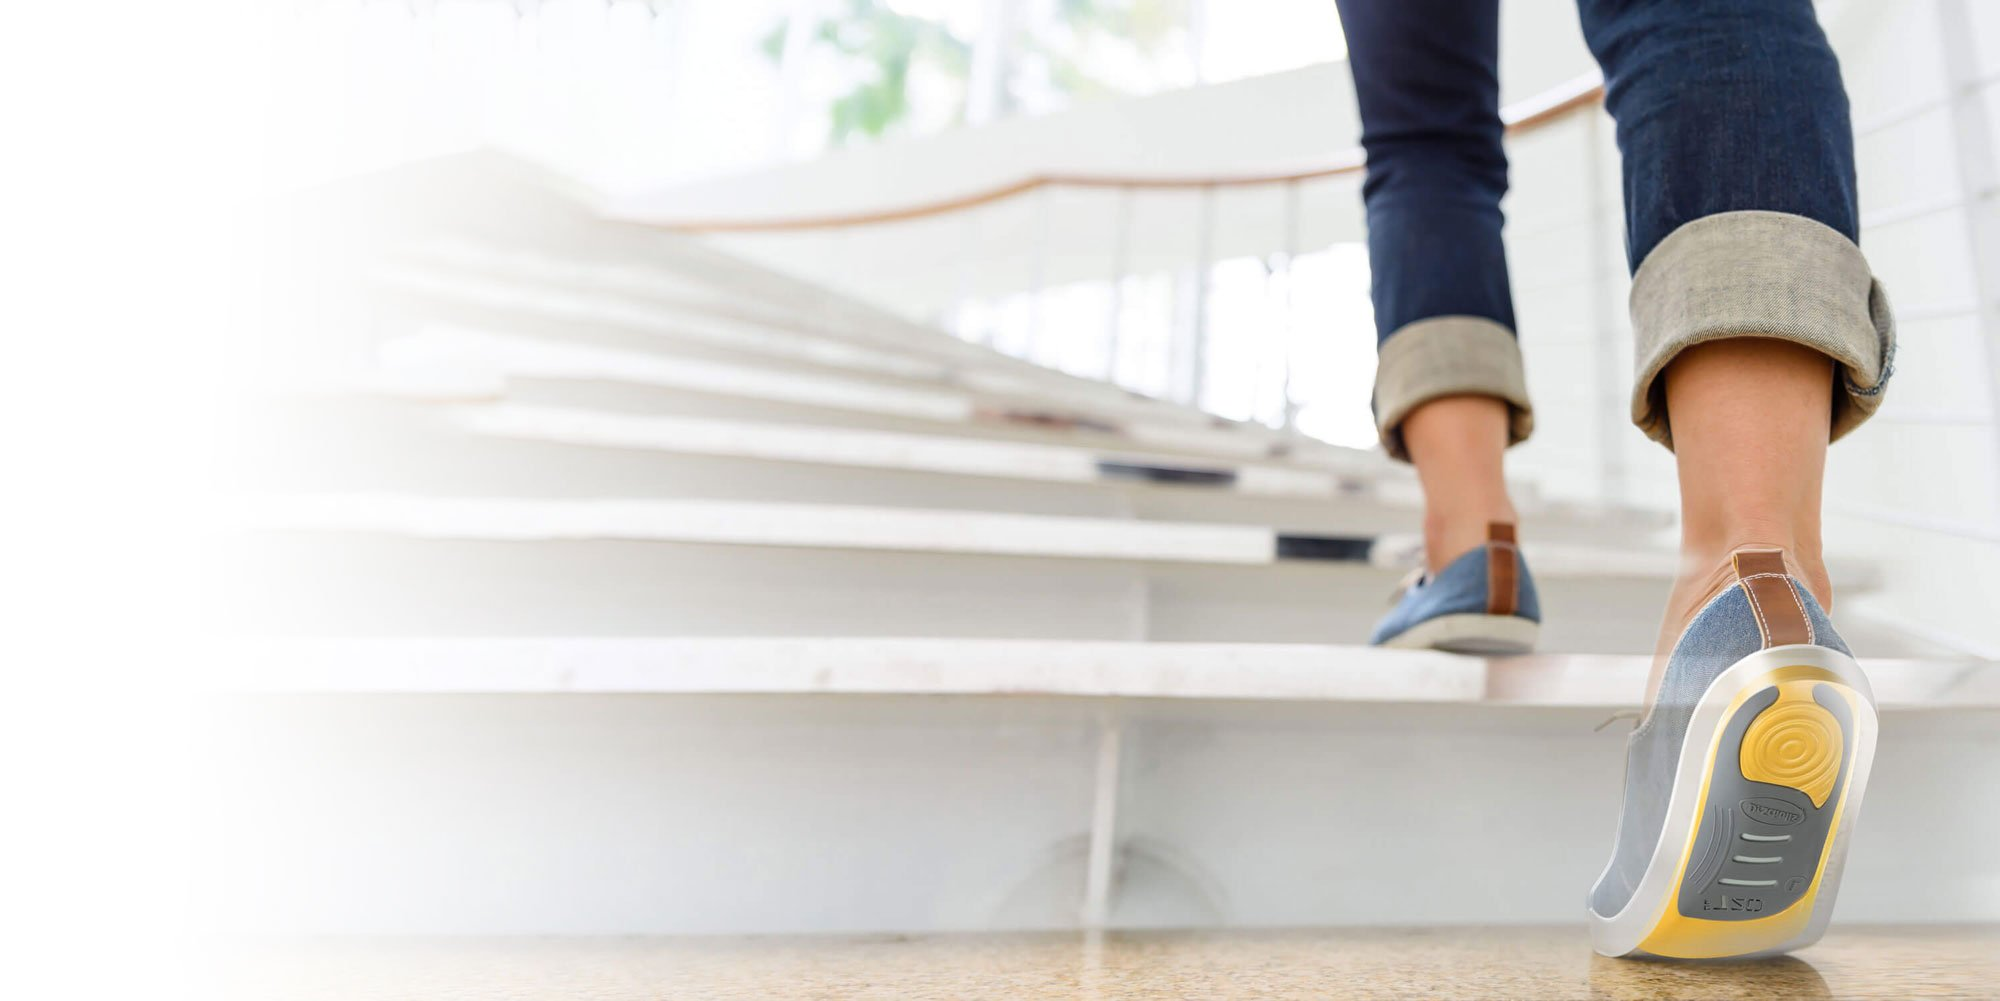 Image of person walking up stairs with Dr. Scholl's insoles in shoes